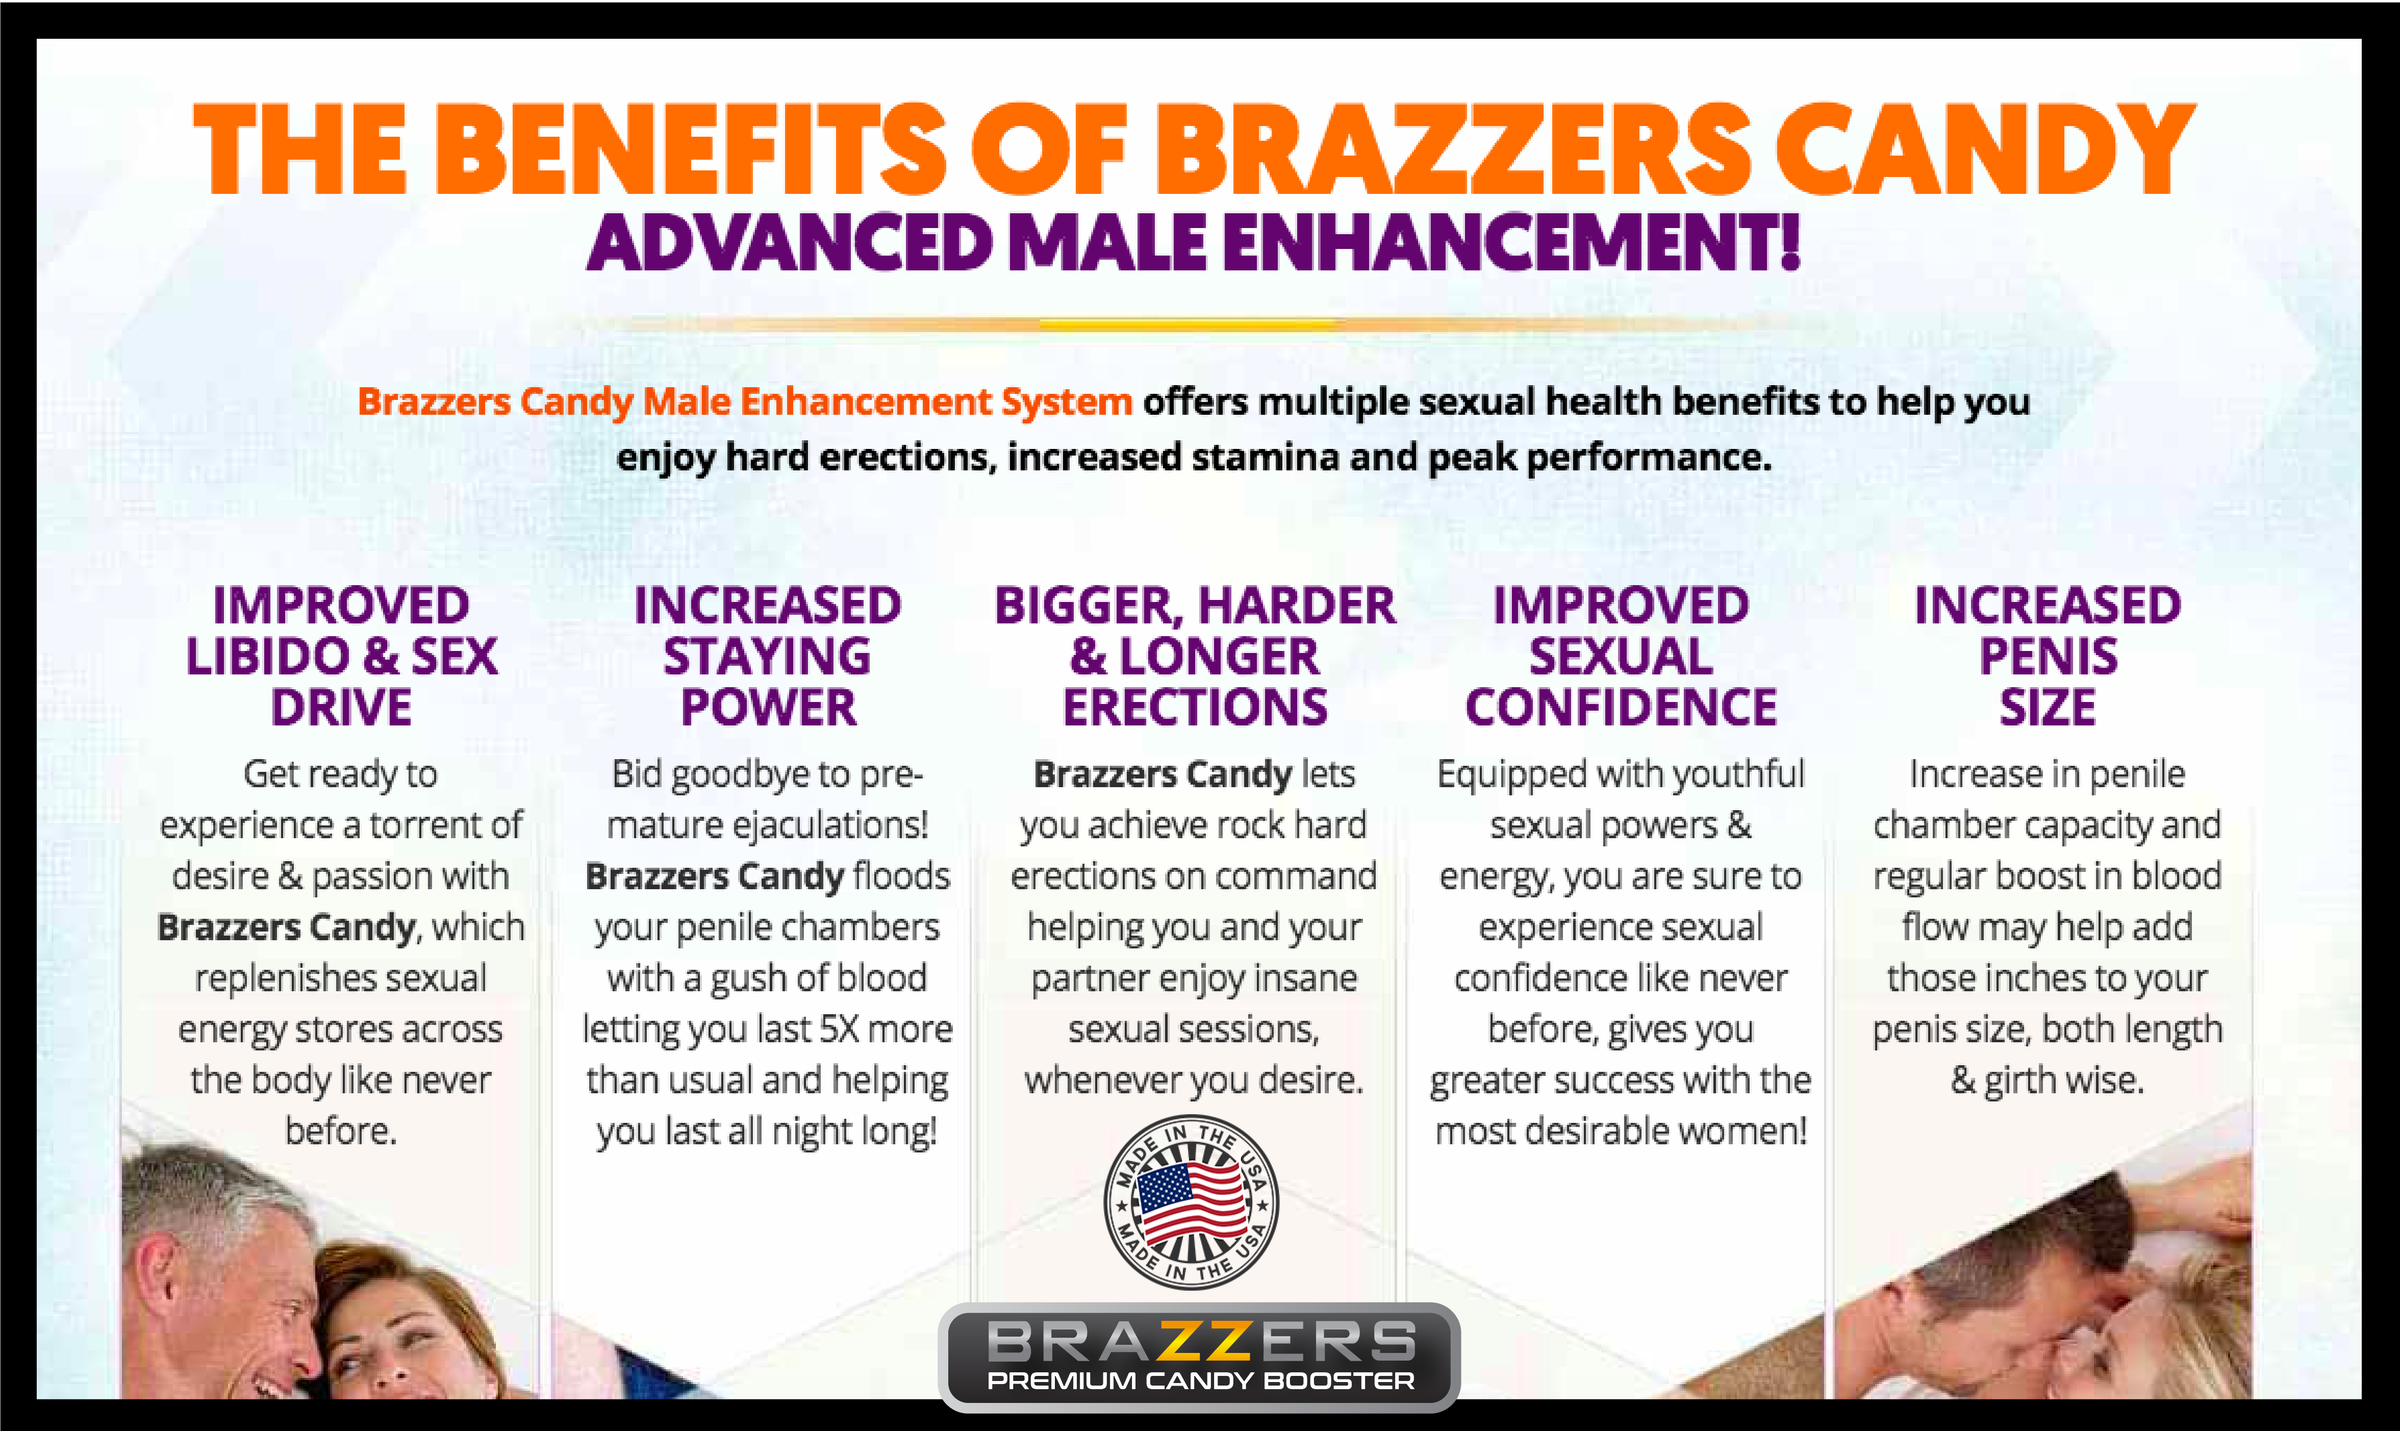 benefits brazzers candy-01.png